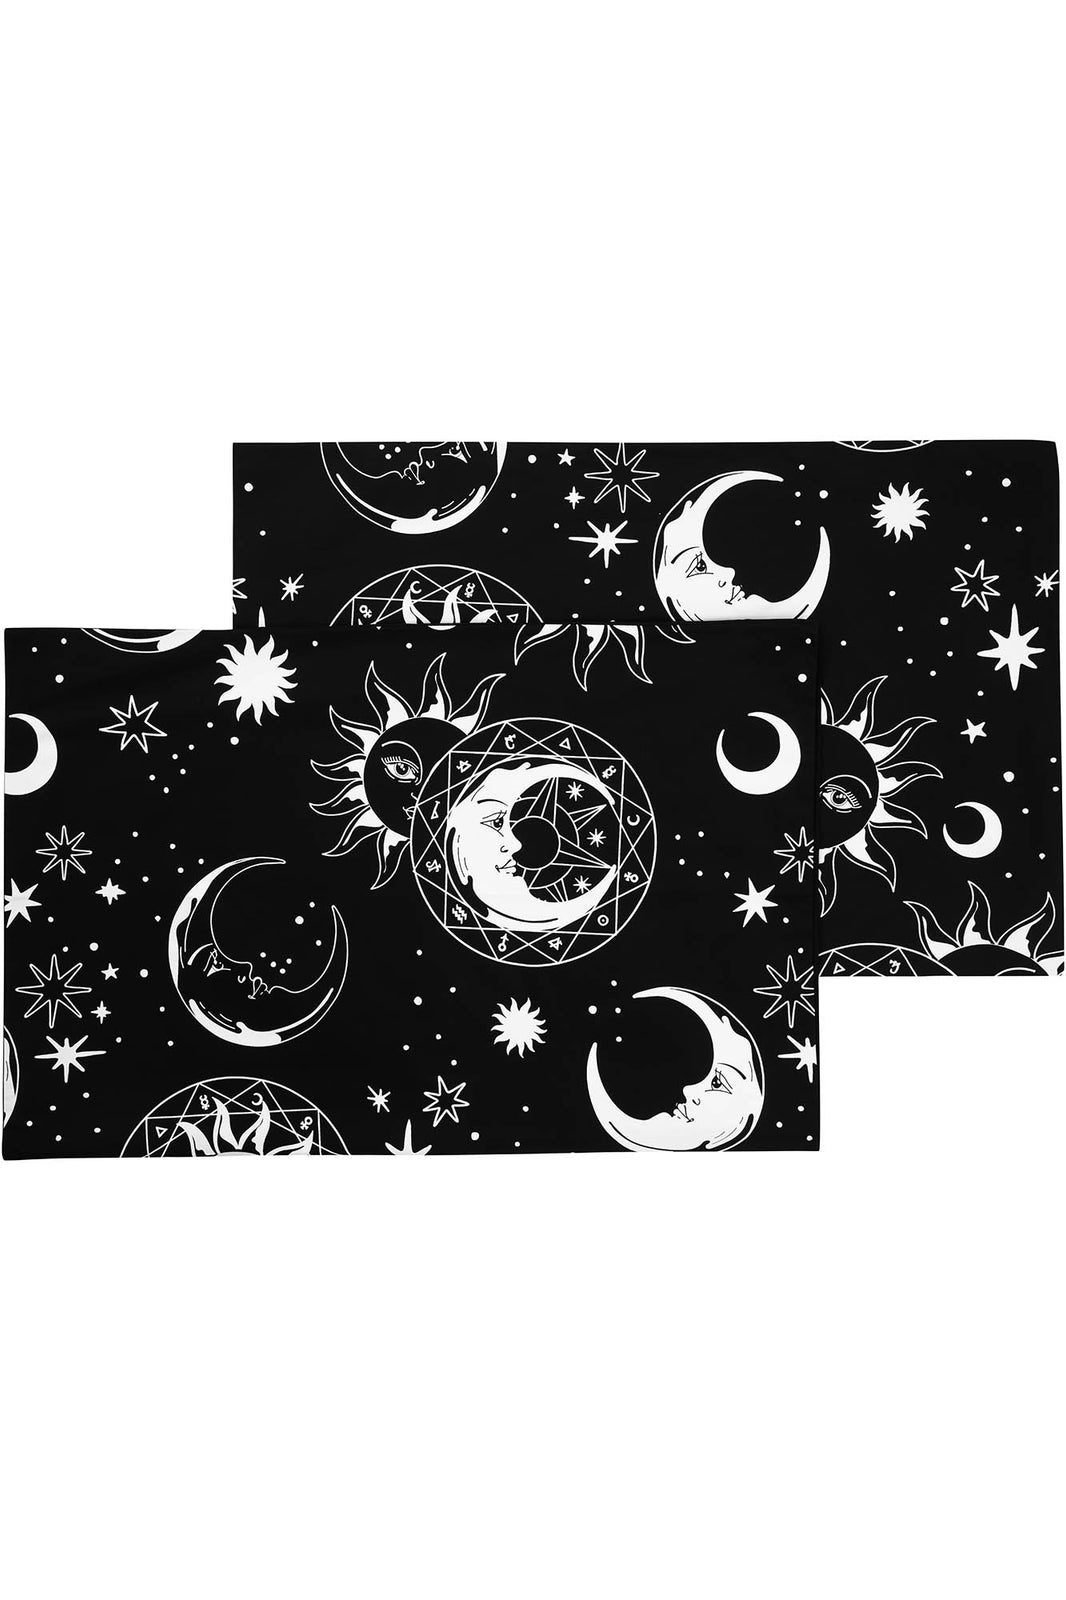 Astral Light Pillowcases